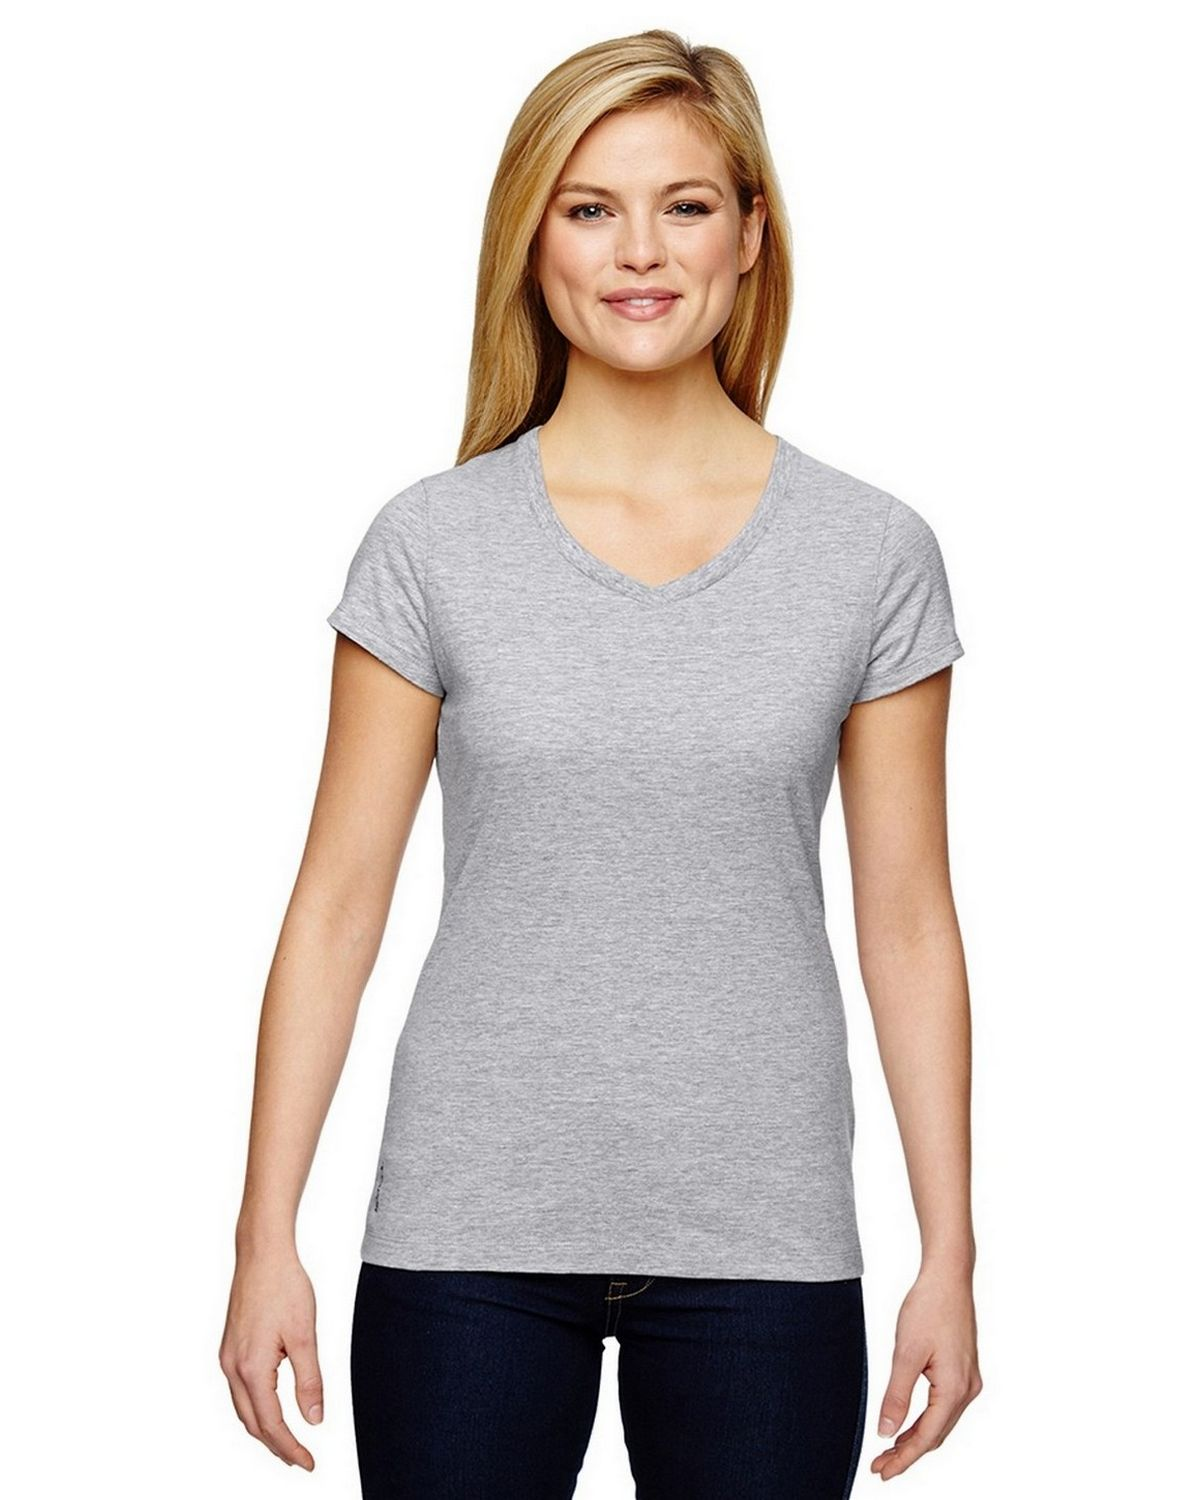 Champion T050 Vapor Ladies T-Shirt - Athletic Heather - L T050